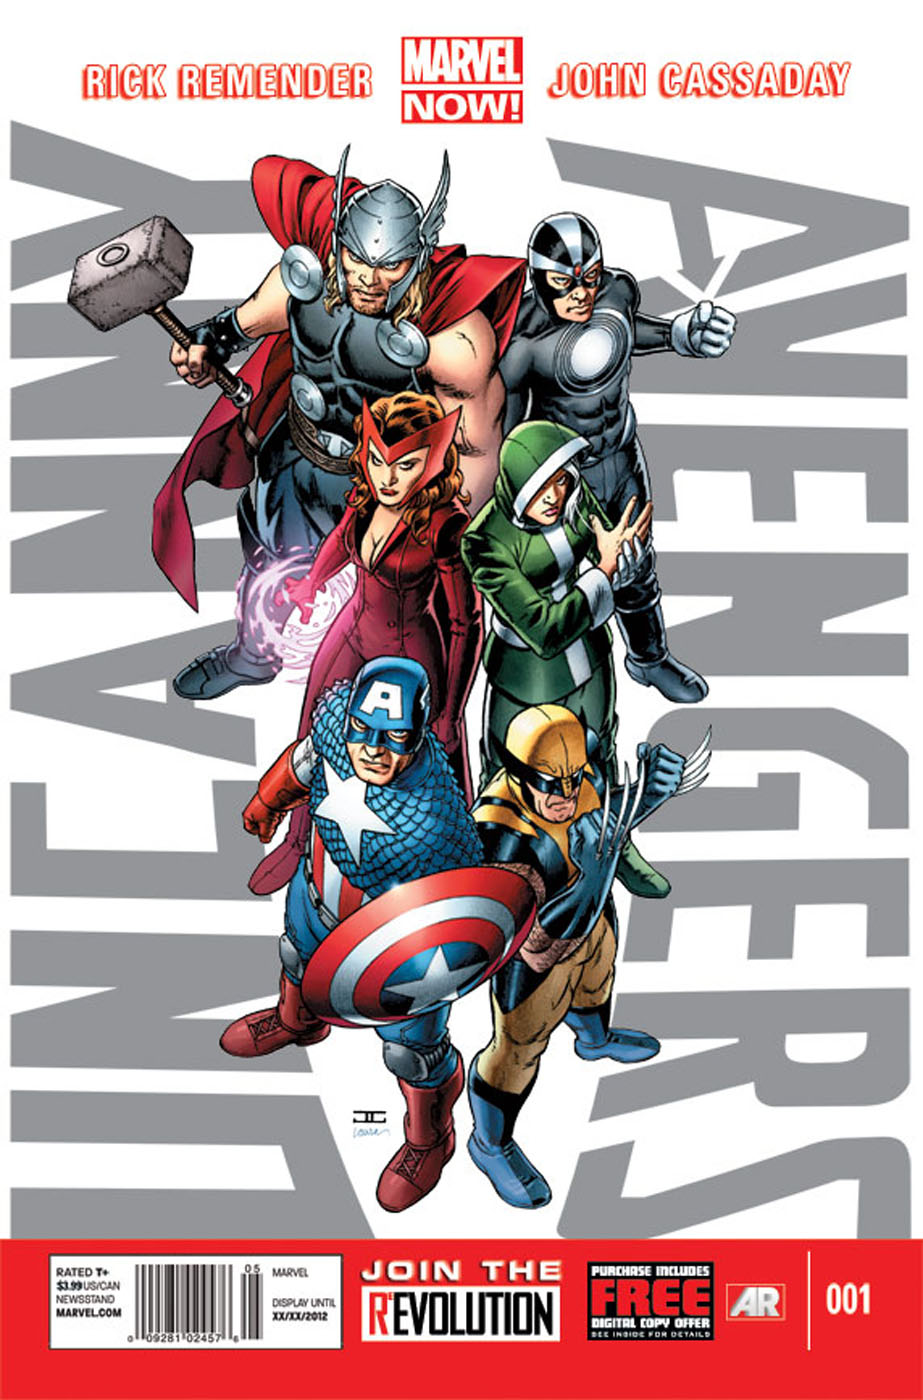 uncannyavengers1 DIAMOND announces the Top Comics in OCTOBER